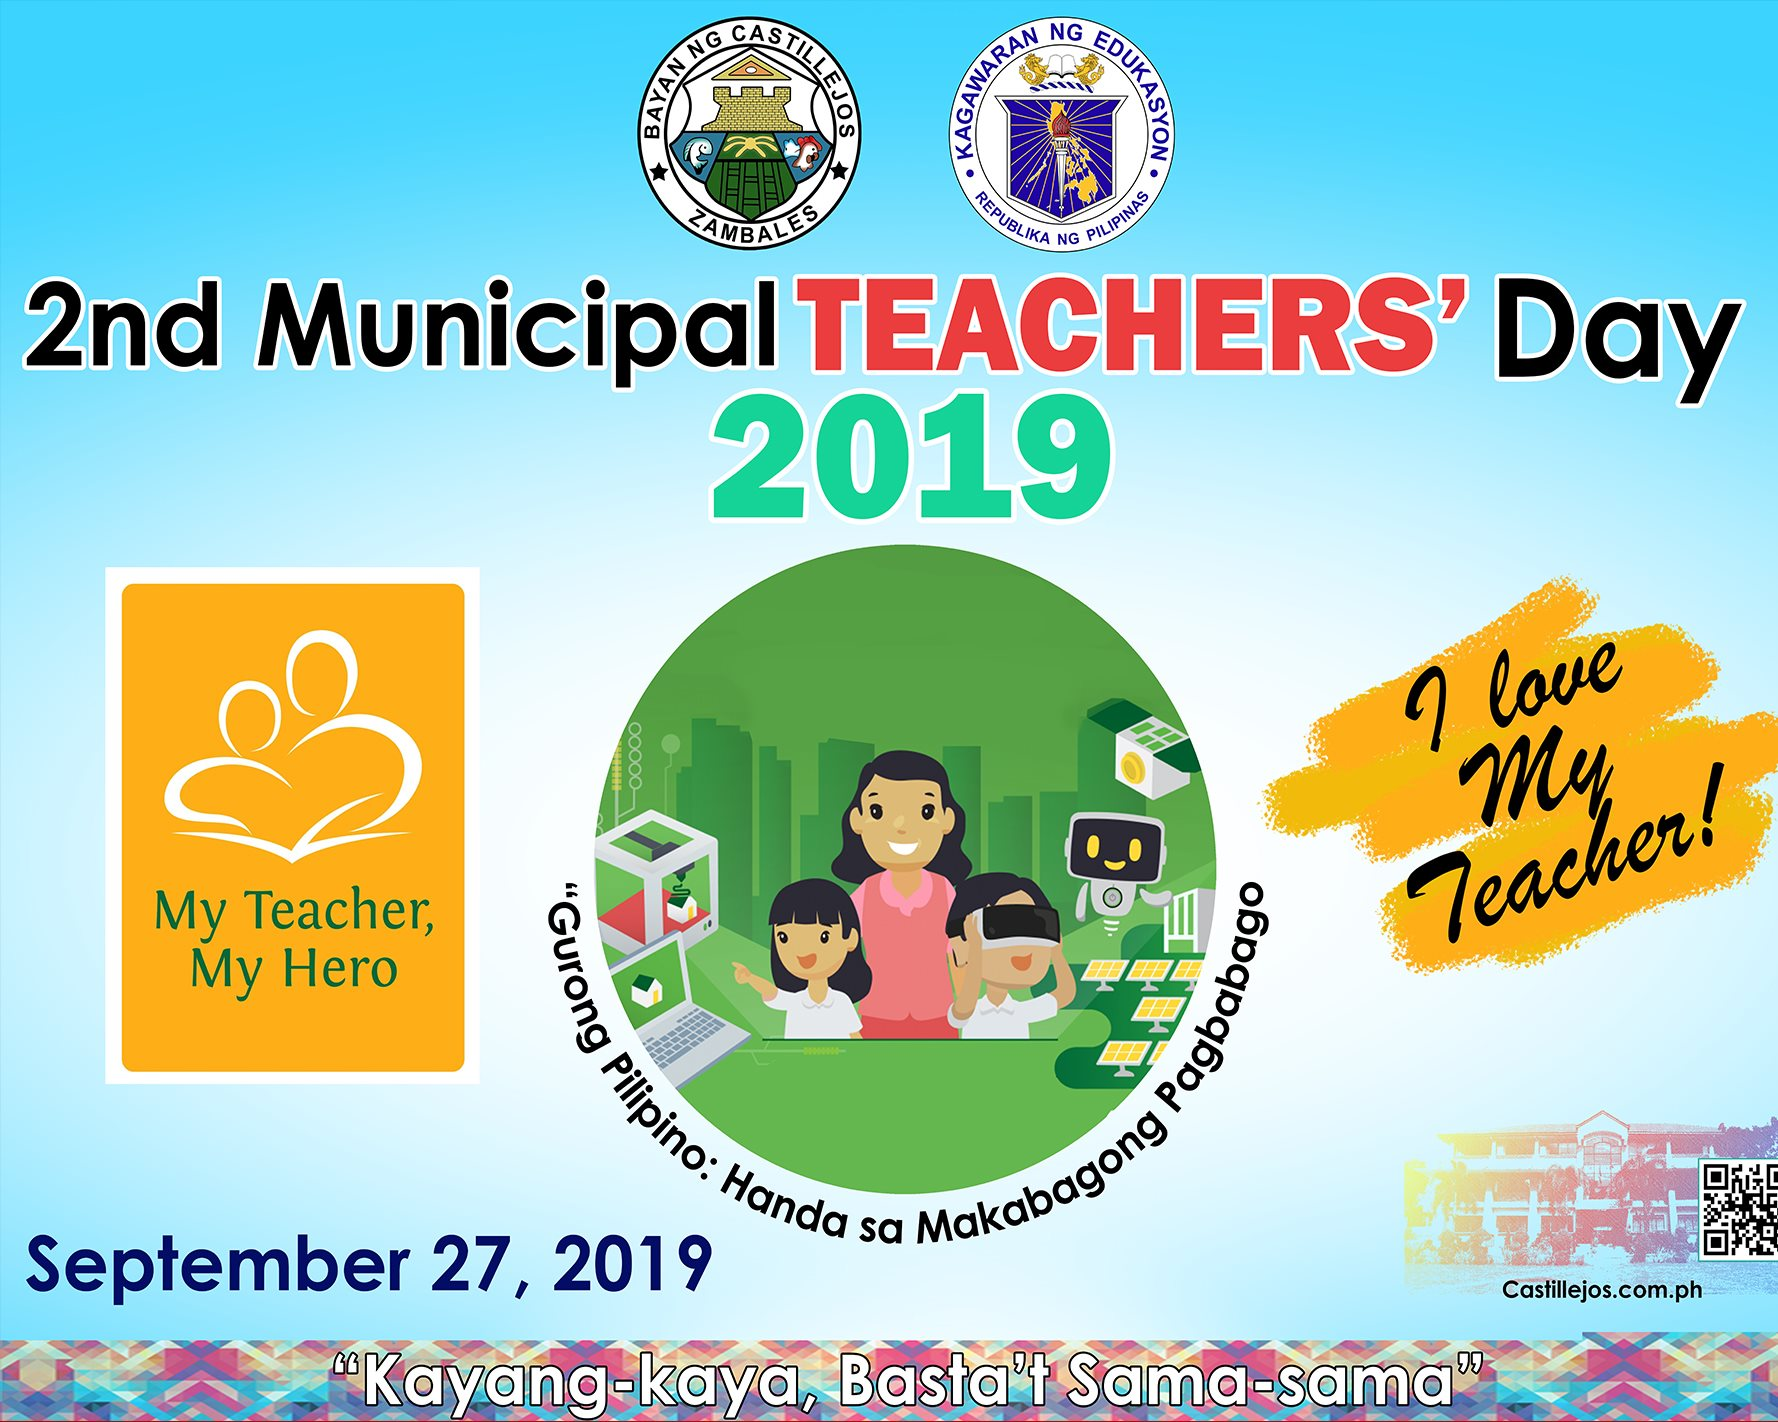 2nd Municipal Teachers' Day Celebration